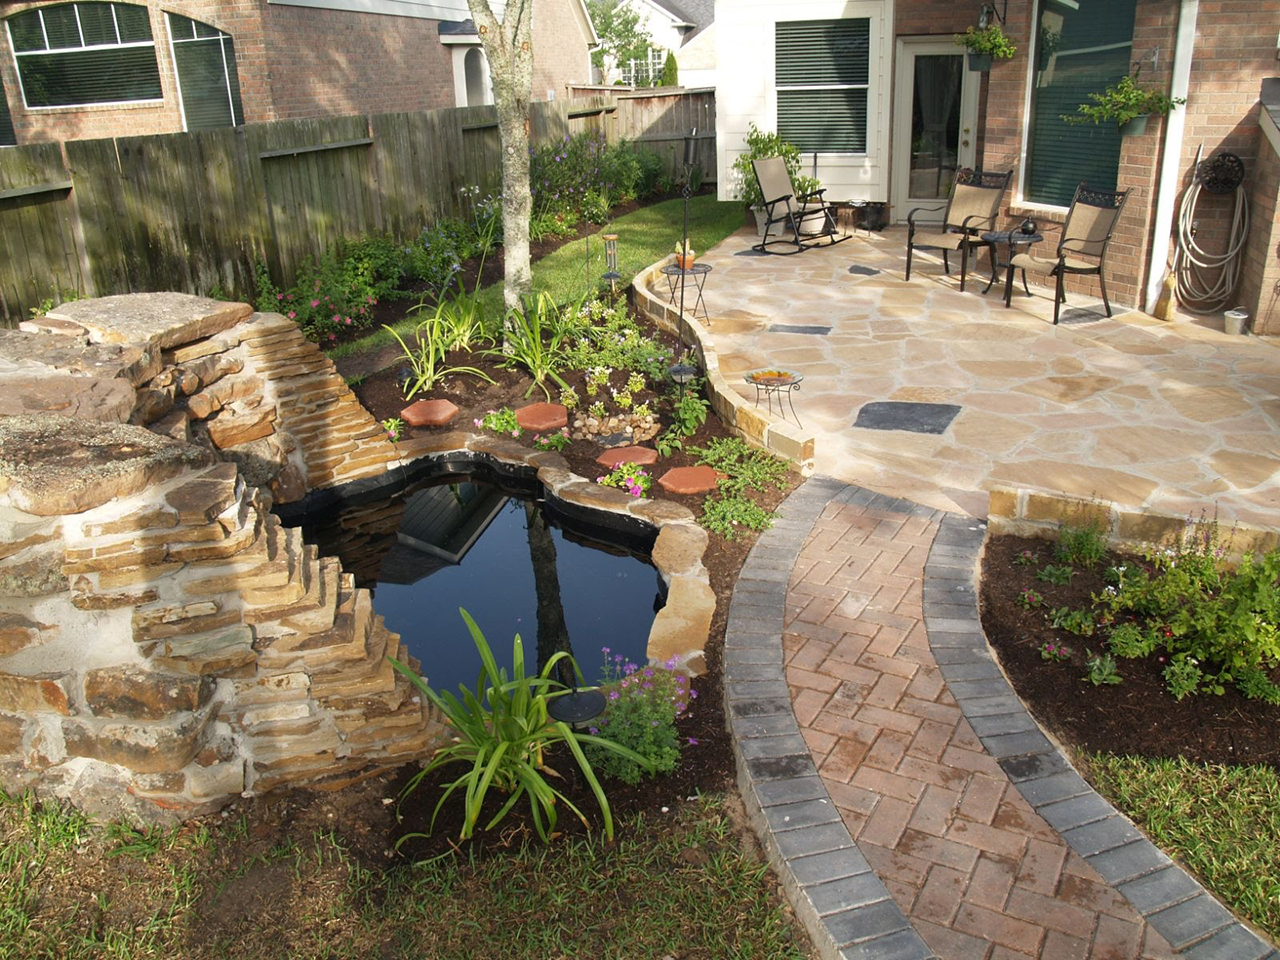 50 Best Backyard Landscaping Ideas and Designs in 2020 on Best Backyard Designs id=88744